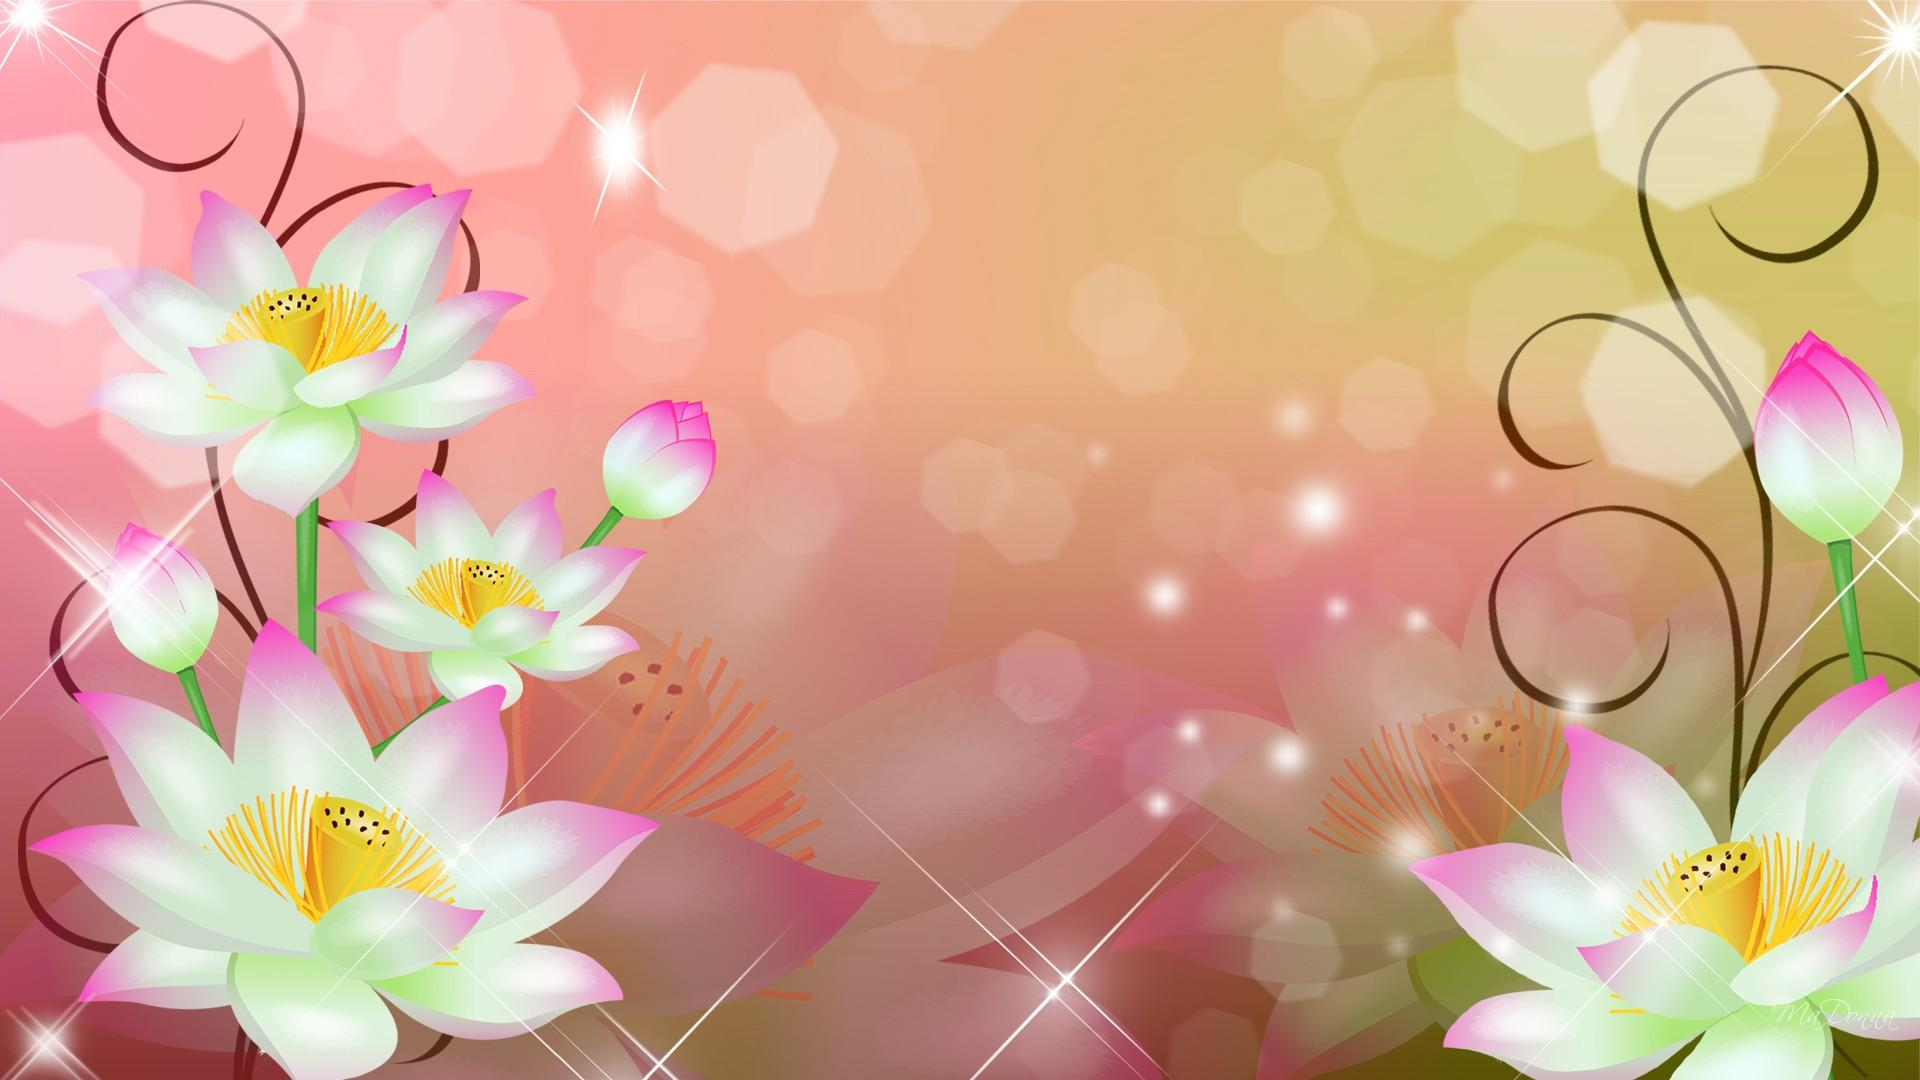 Flowers Wallpaper Androids